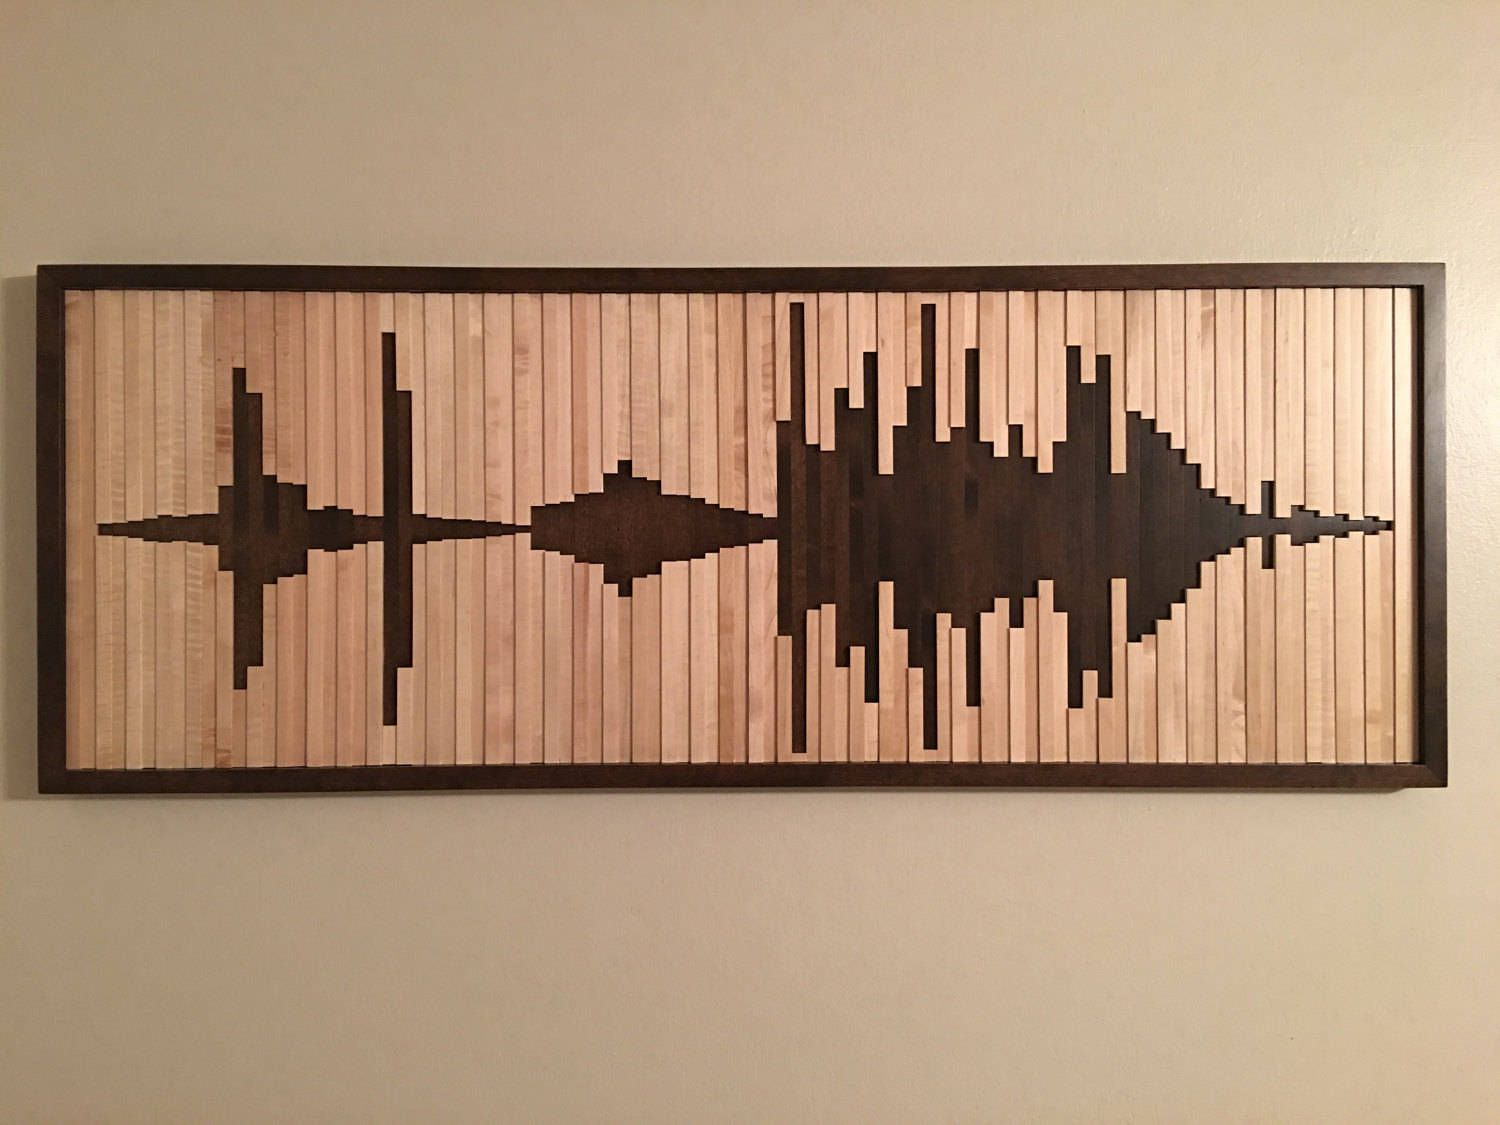 Abstract Sound Wave Wood Wall Art Wood Wall Sound Wave Wall Art